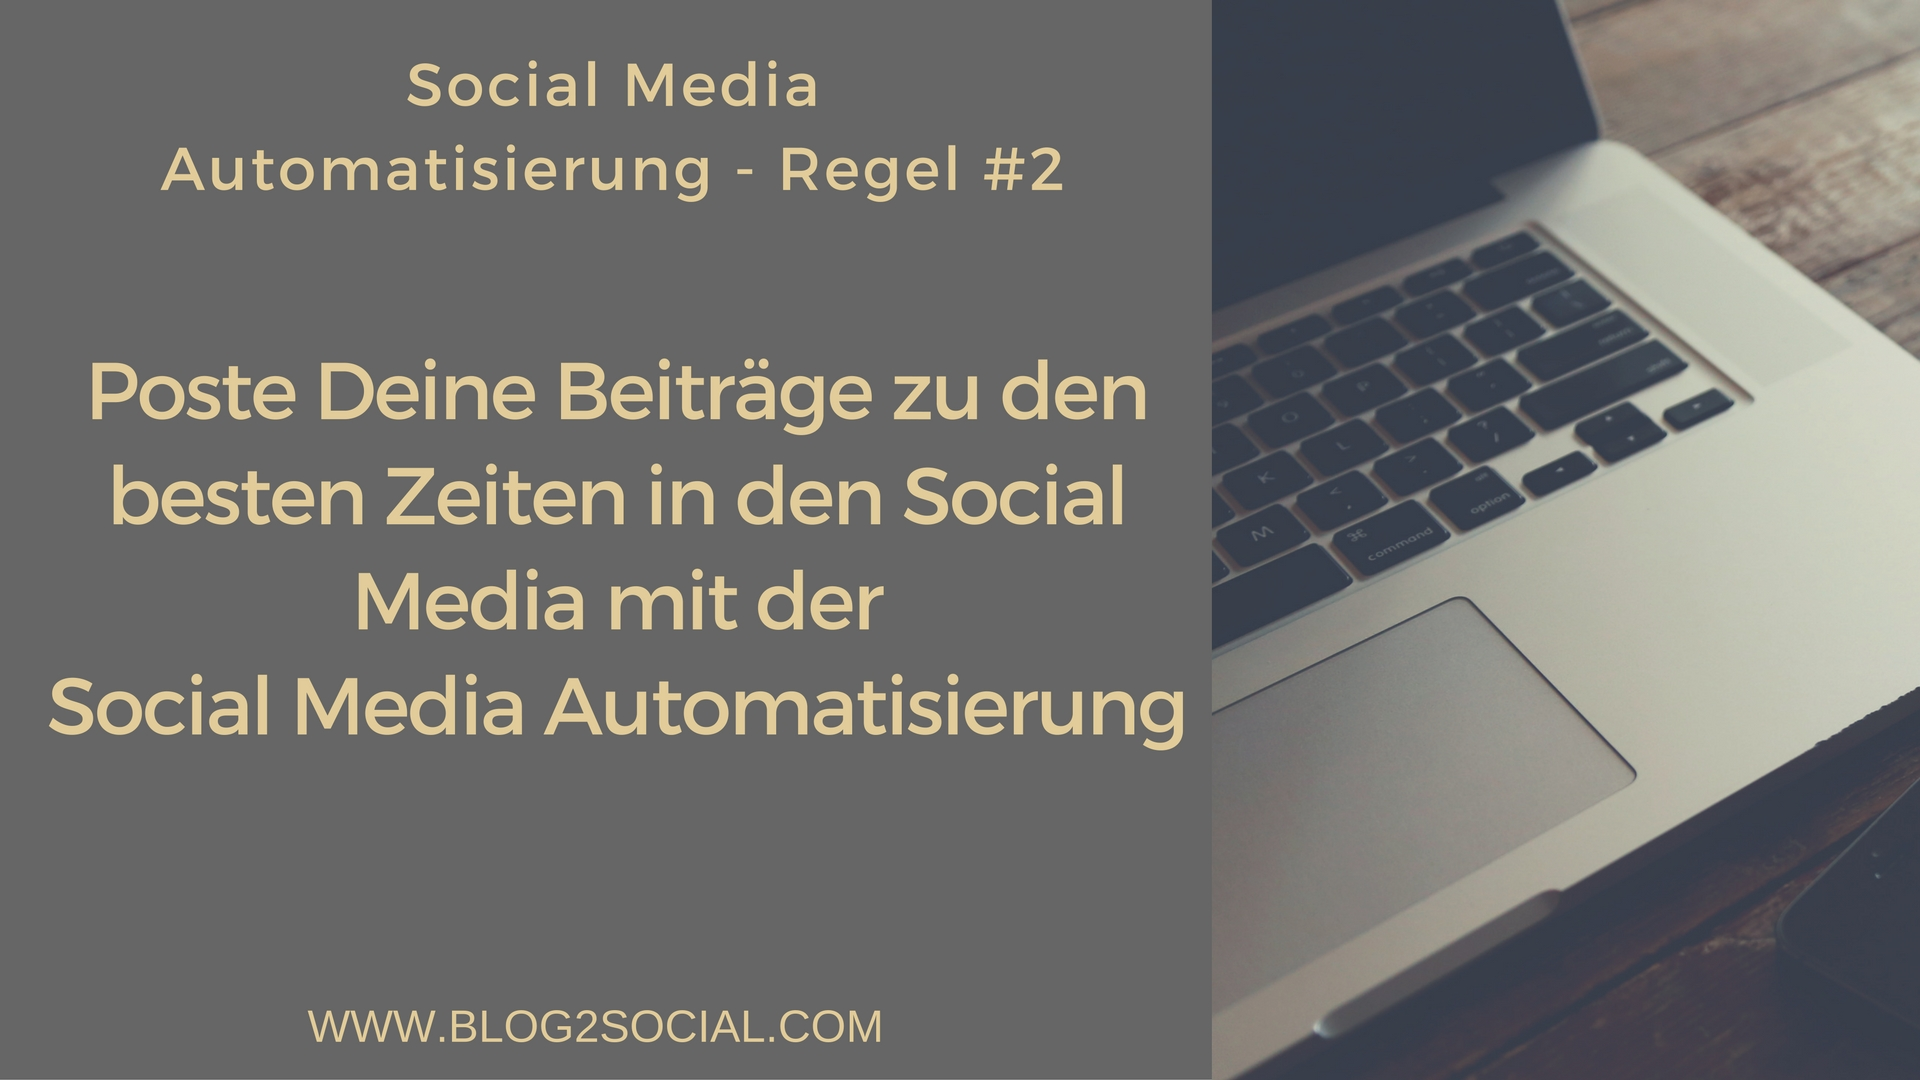 Cross Social Media Automatisierung mit optimierten Social Media Posts